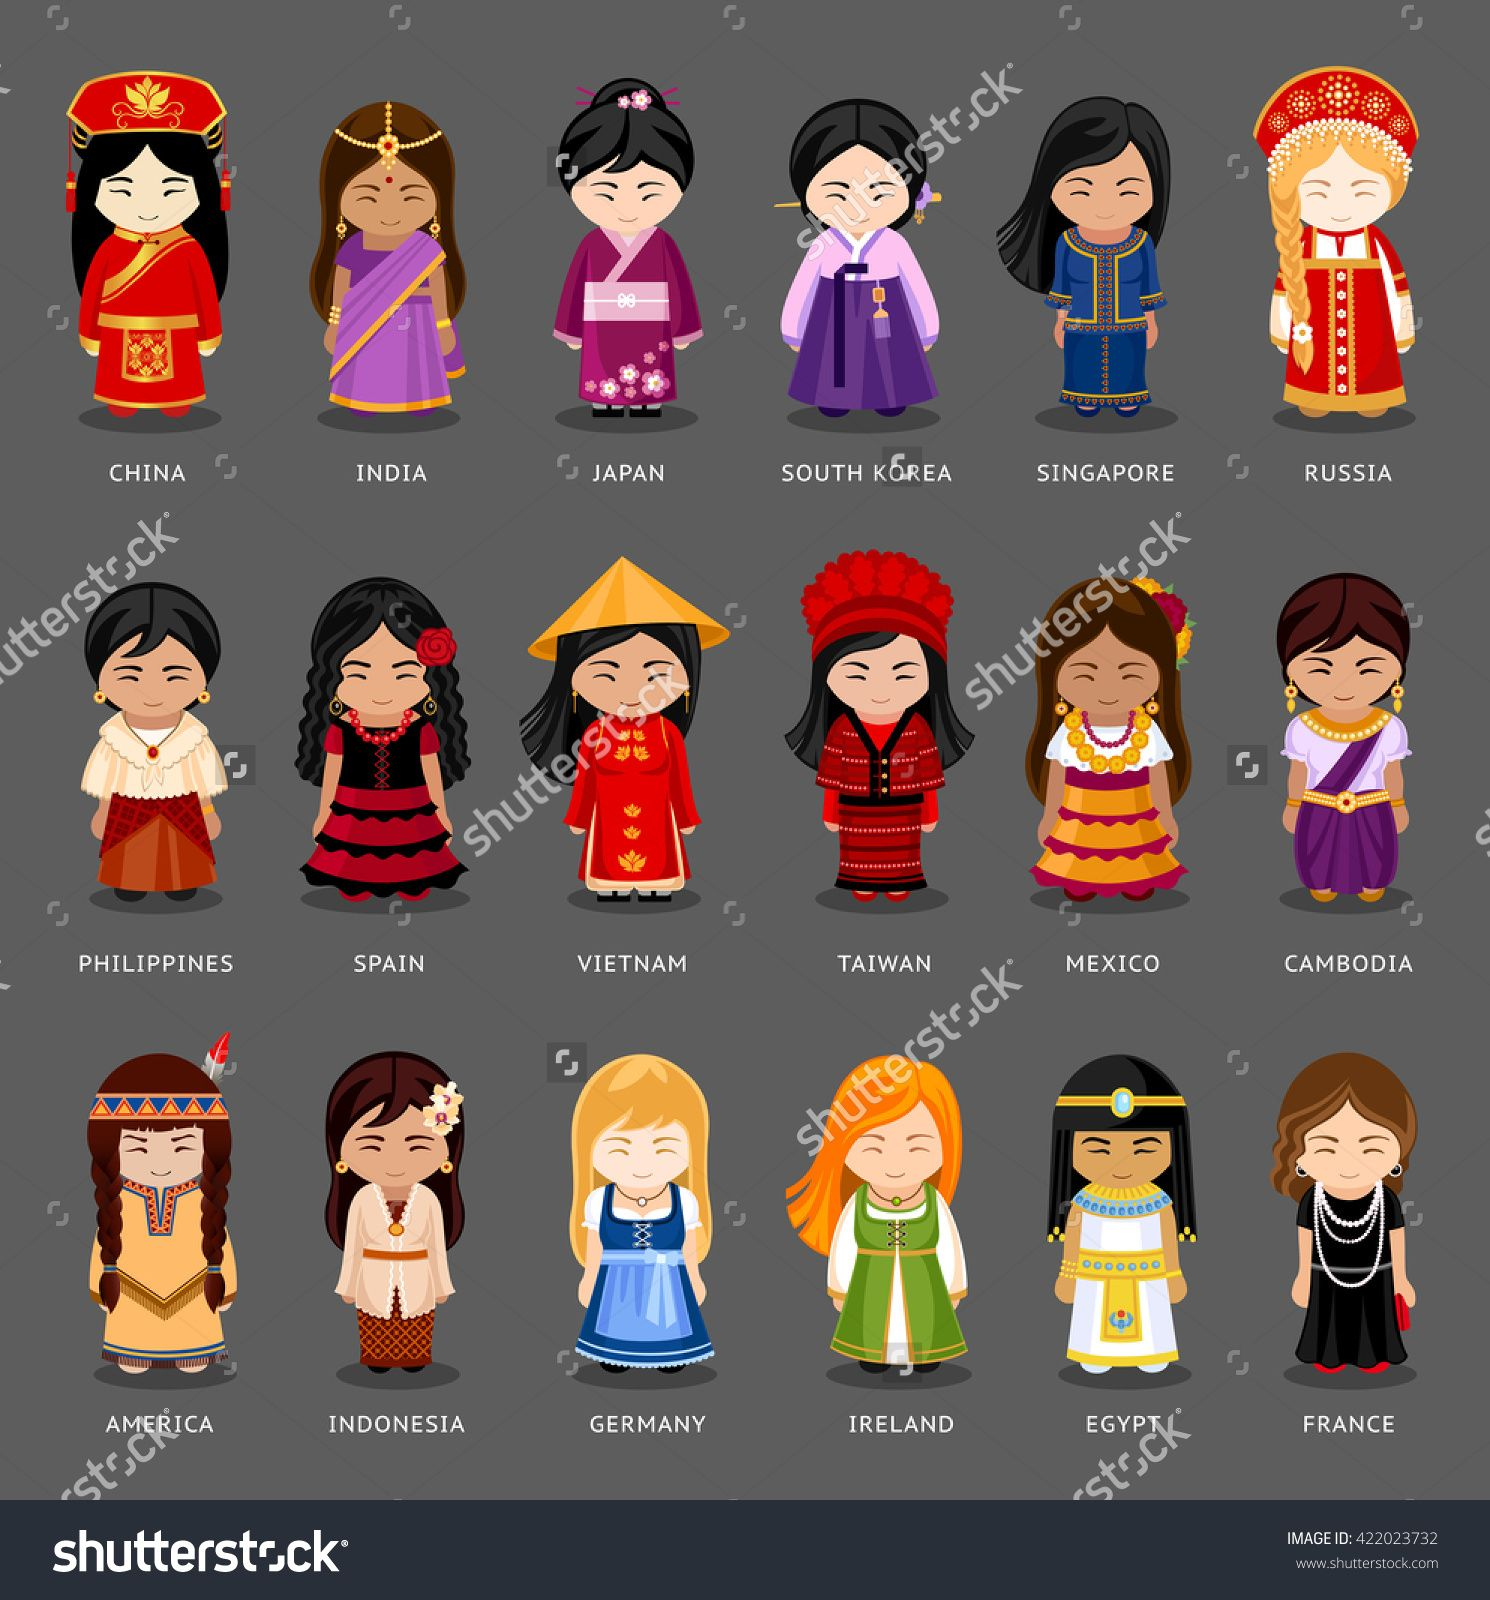 a7d89ba91 Cartoon Girls In Different National Costumes. Vector Illustration Of ...